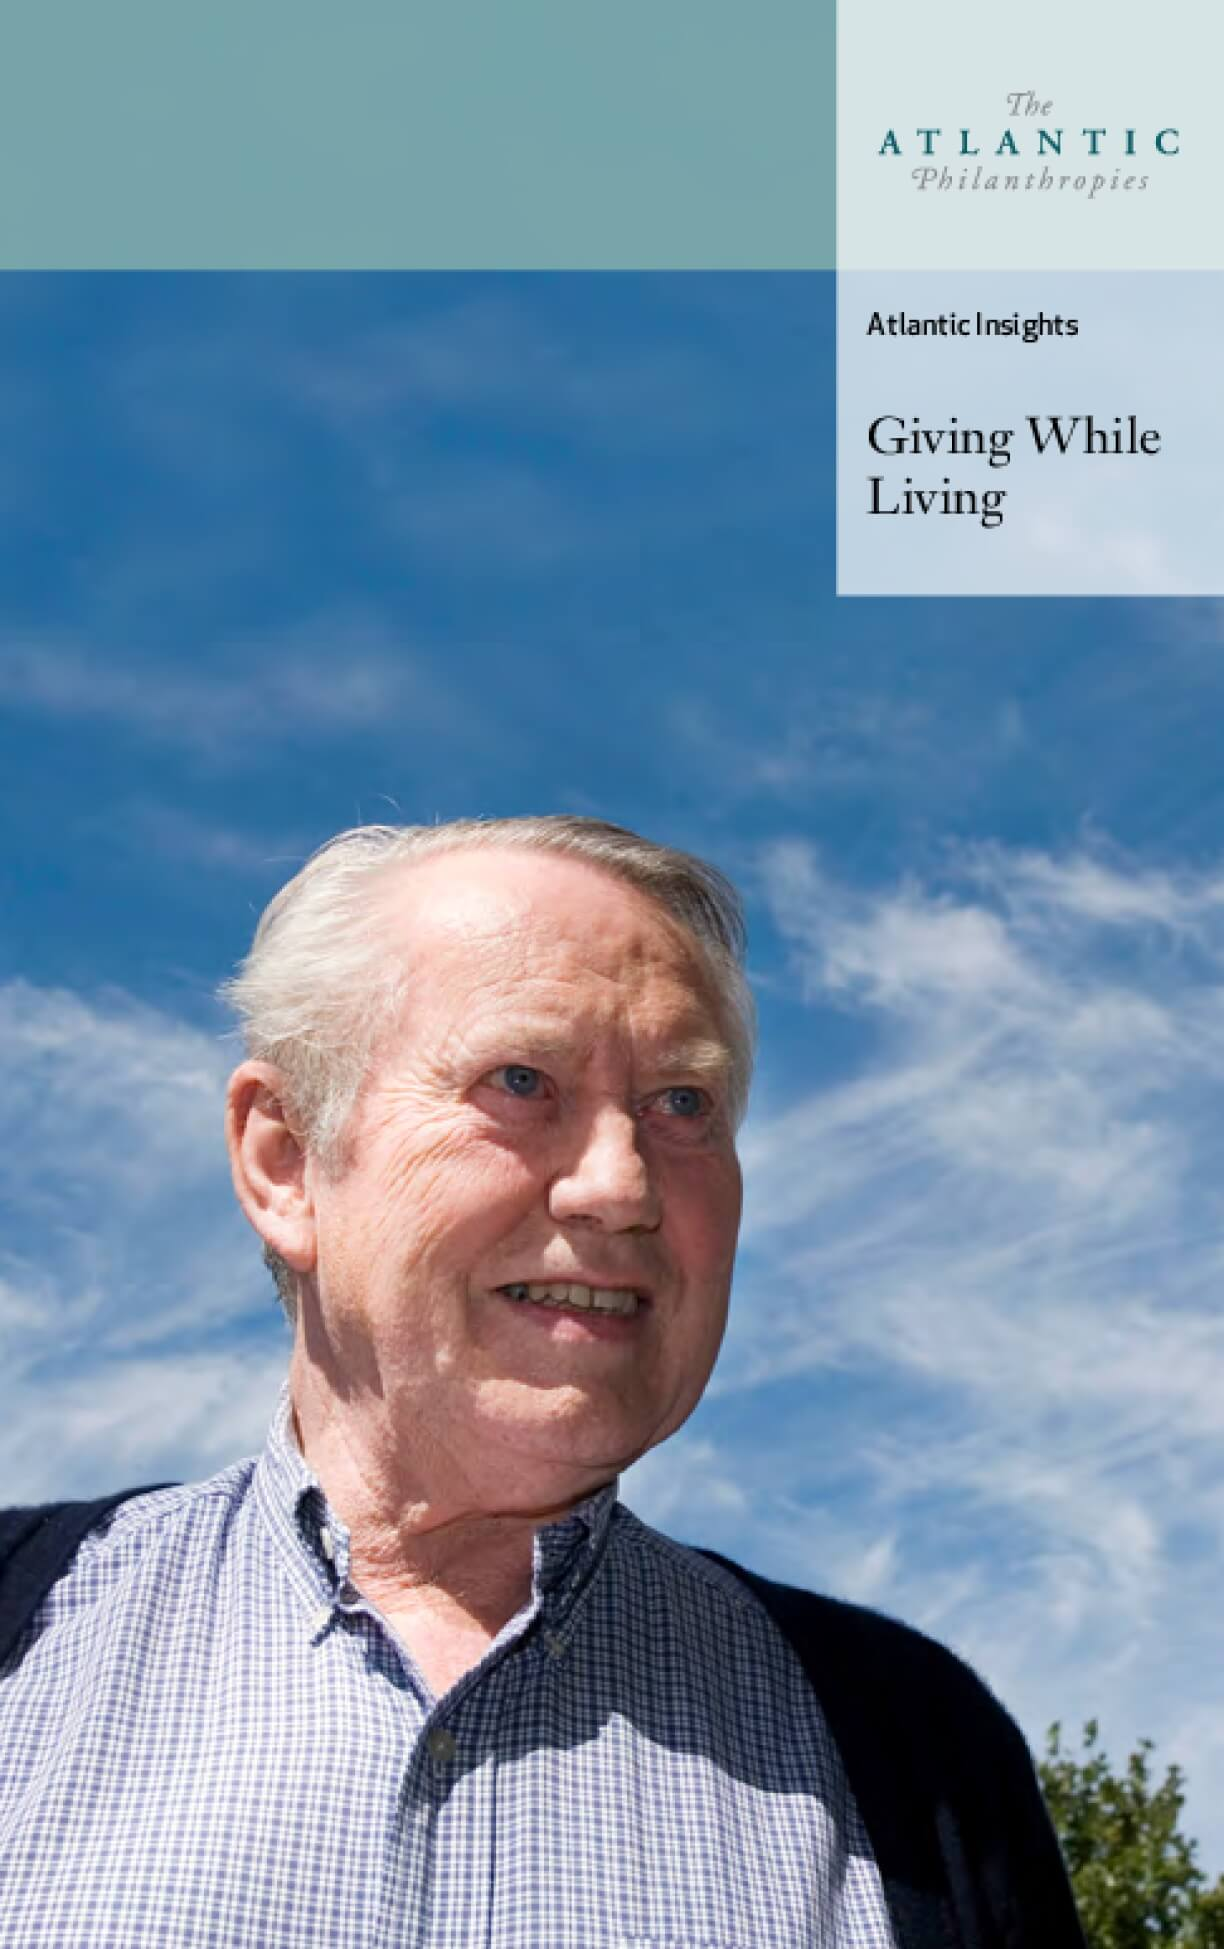 Atlantic Insights: Giving While Living